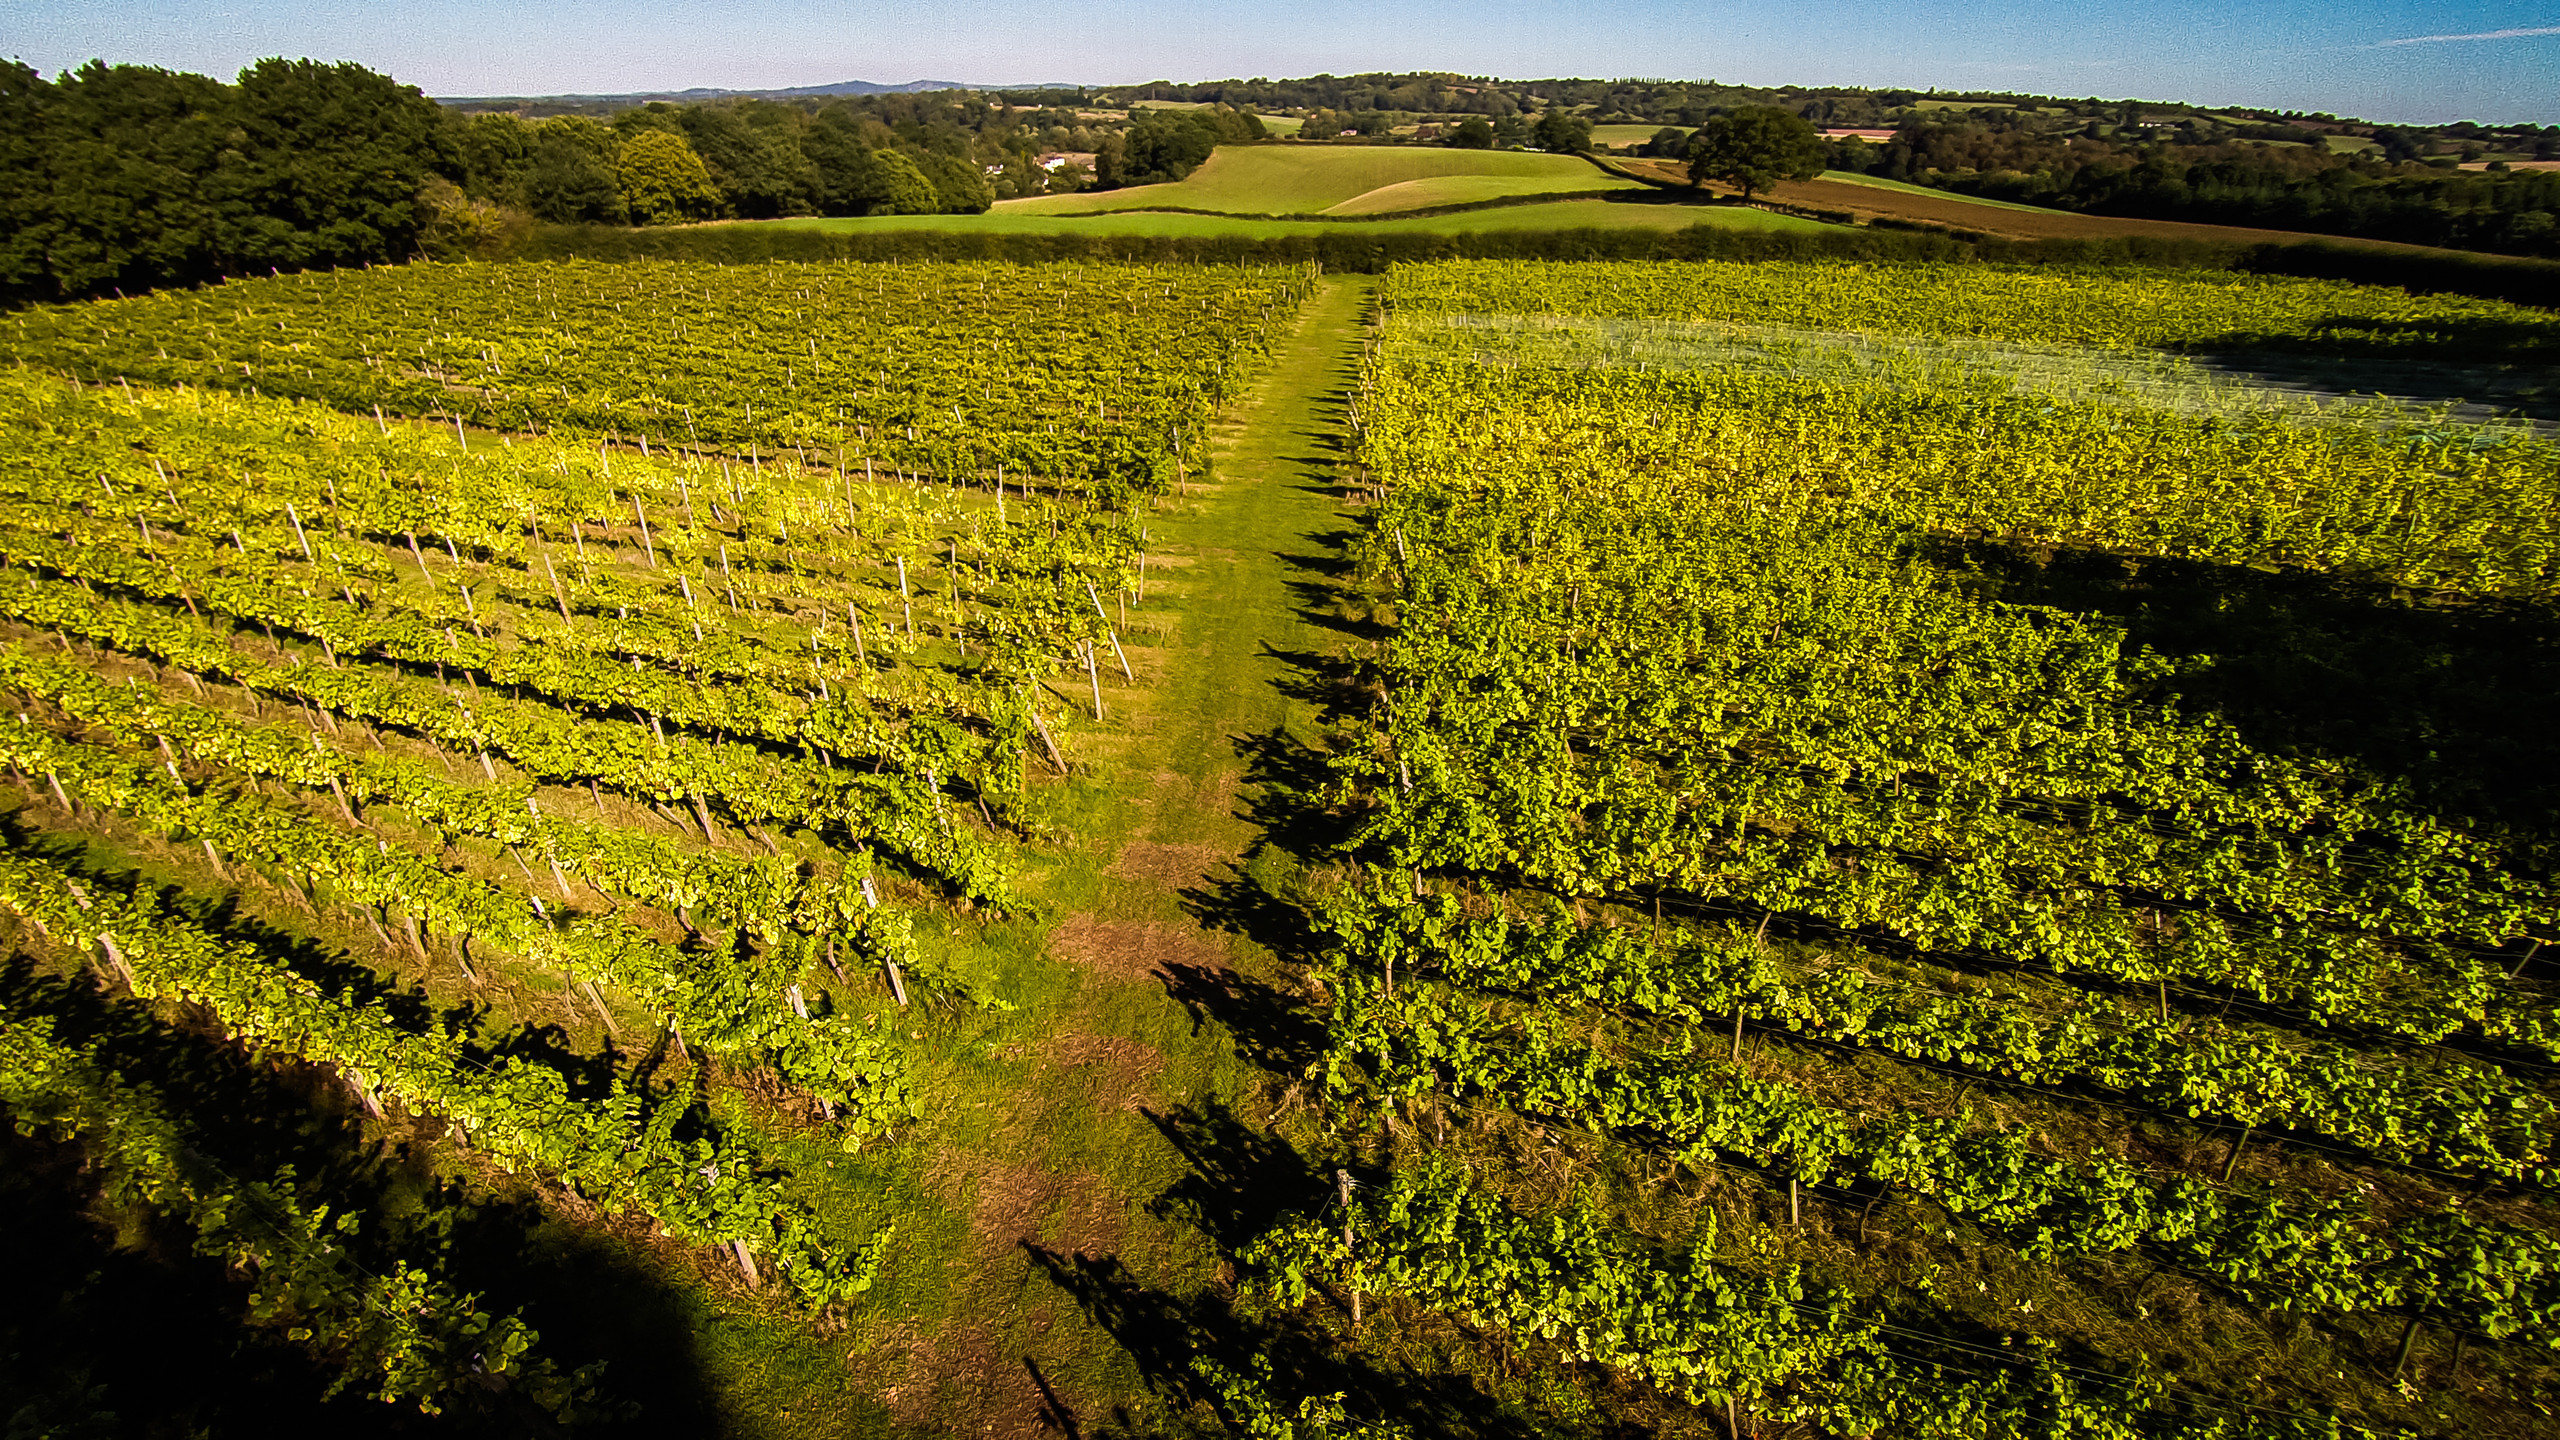 Astley Vineyard from the sky 2018